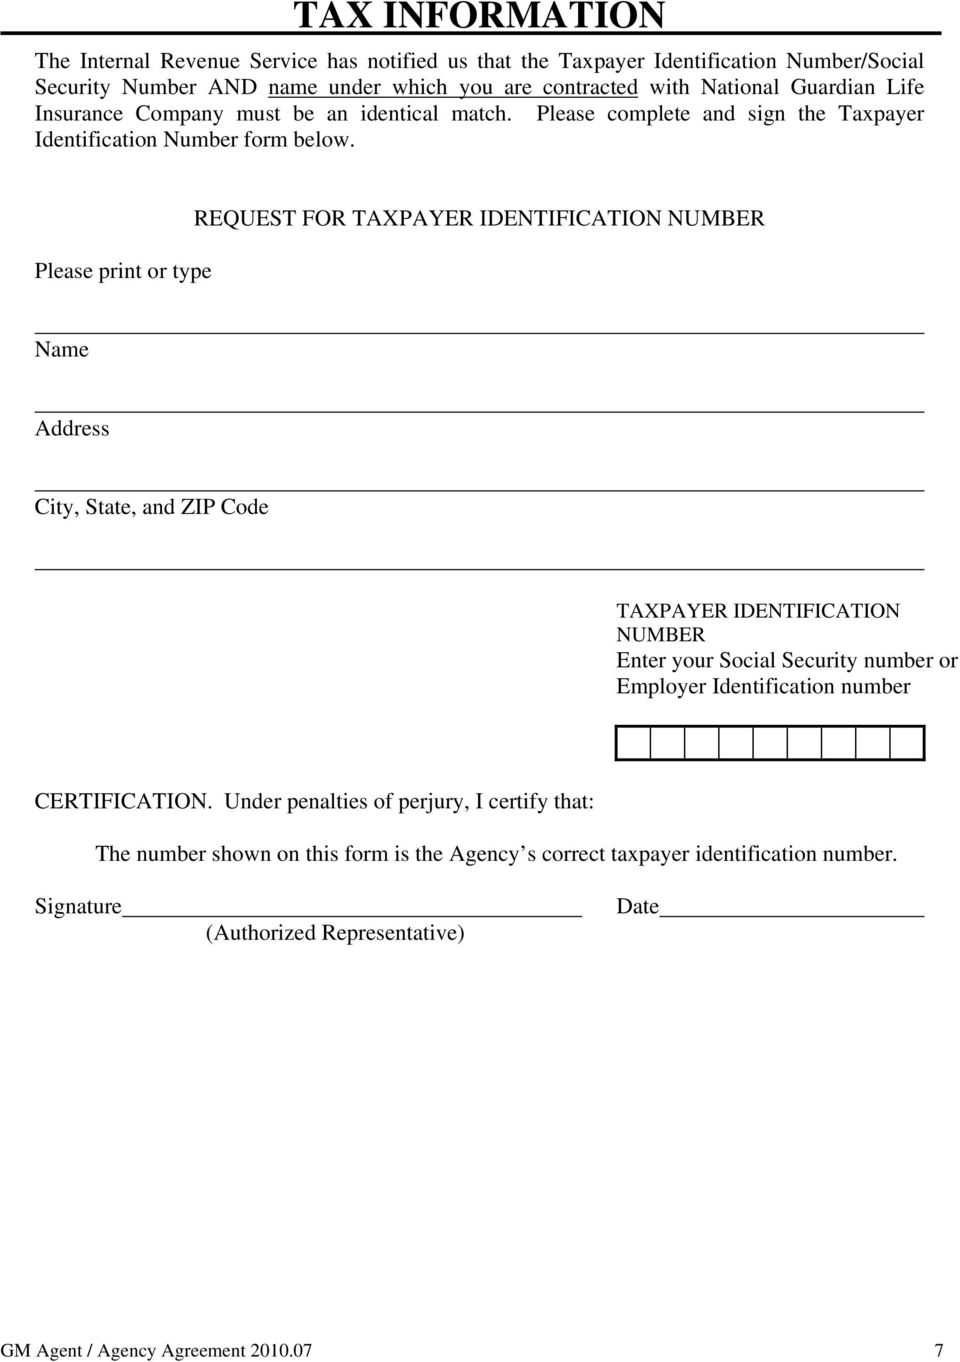 Please print or type REQUEST FOR TAXPAYER IDENTIFICATION NUMBER Name Address City, State, and ZIP Code TAXPAYER IDENTIFICATION NUMBER Enter your Social Security number or Employer